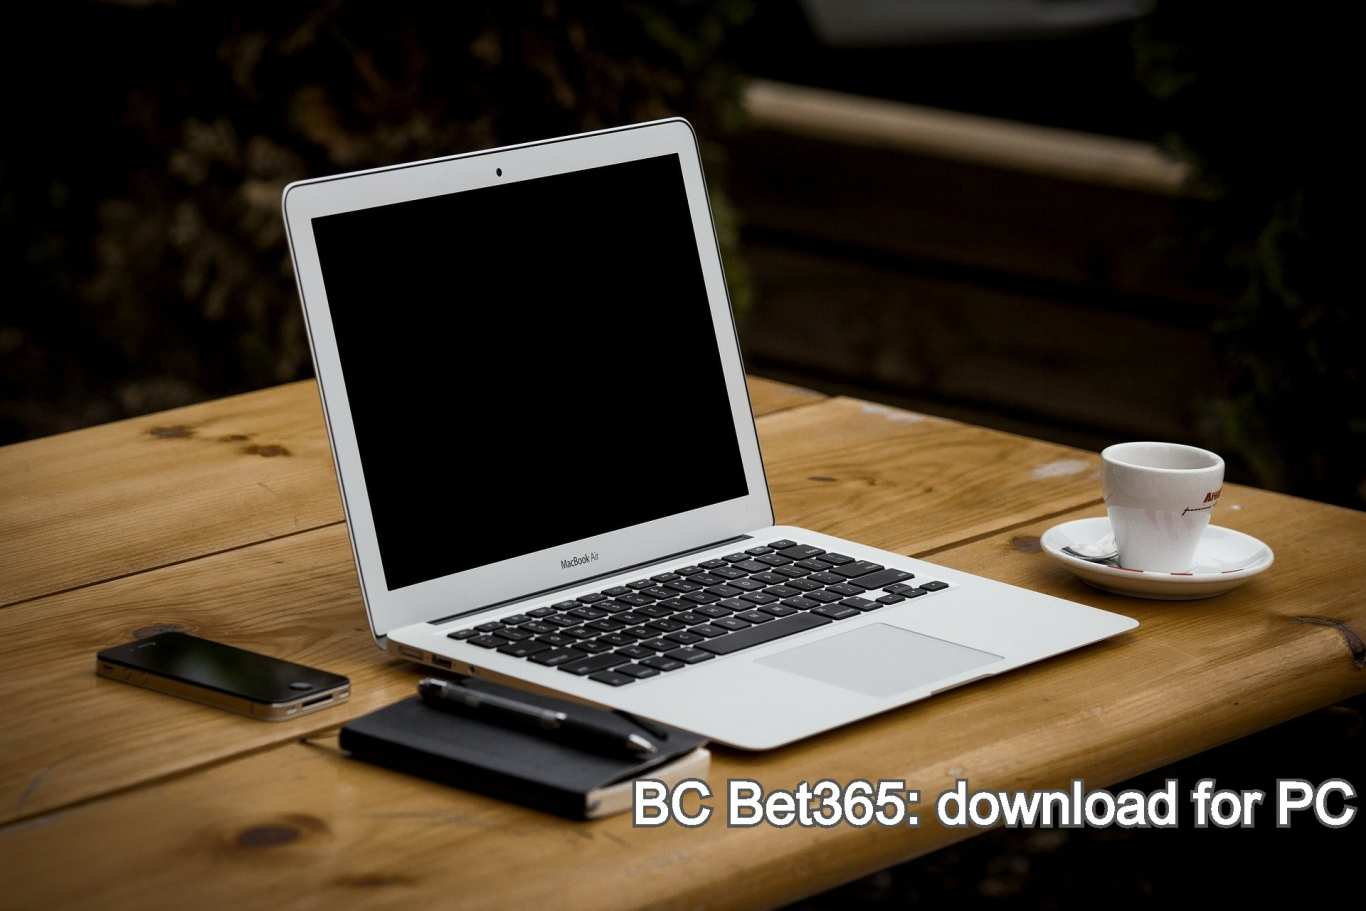 BC Bet365: download for PC